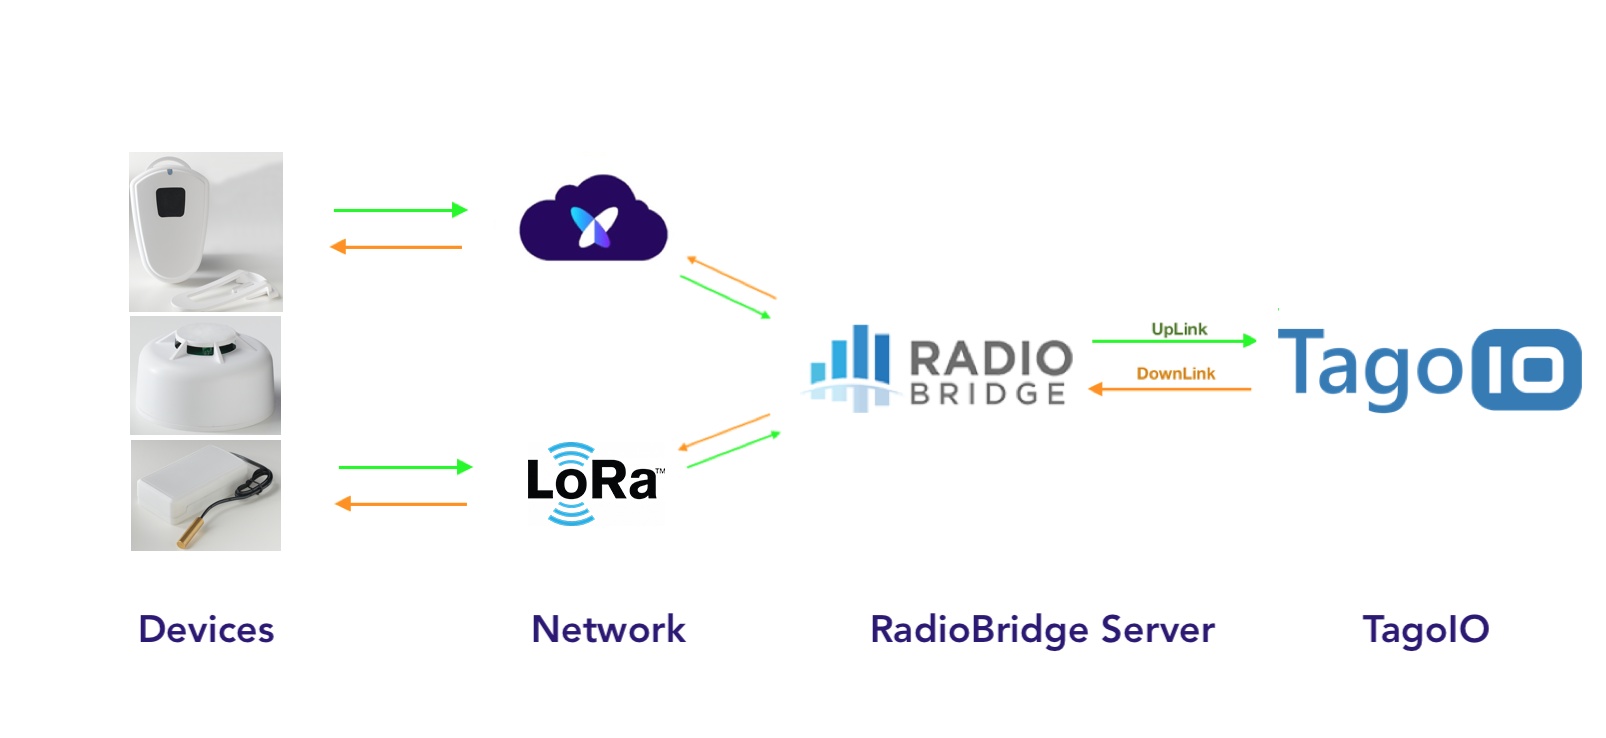 RadioBridge TagoIO diagram